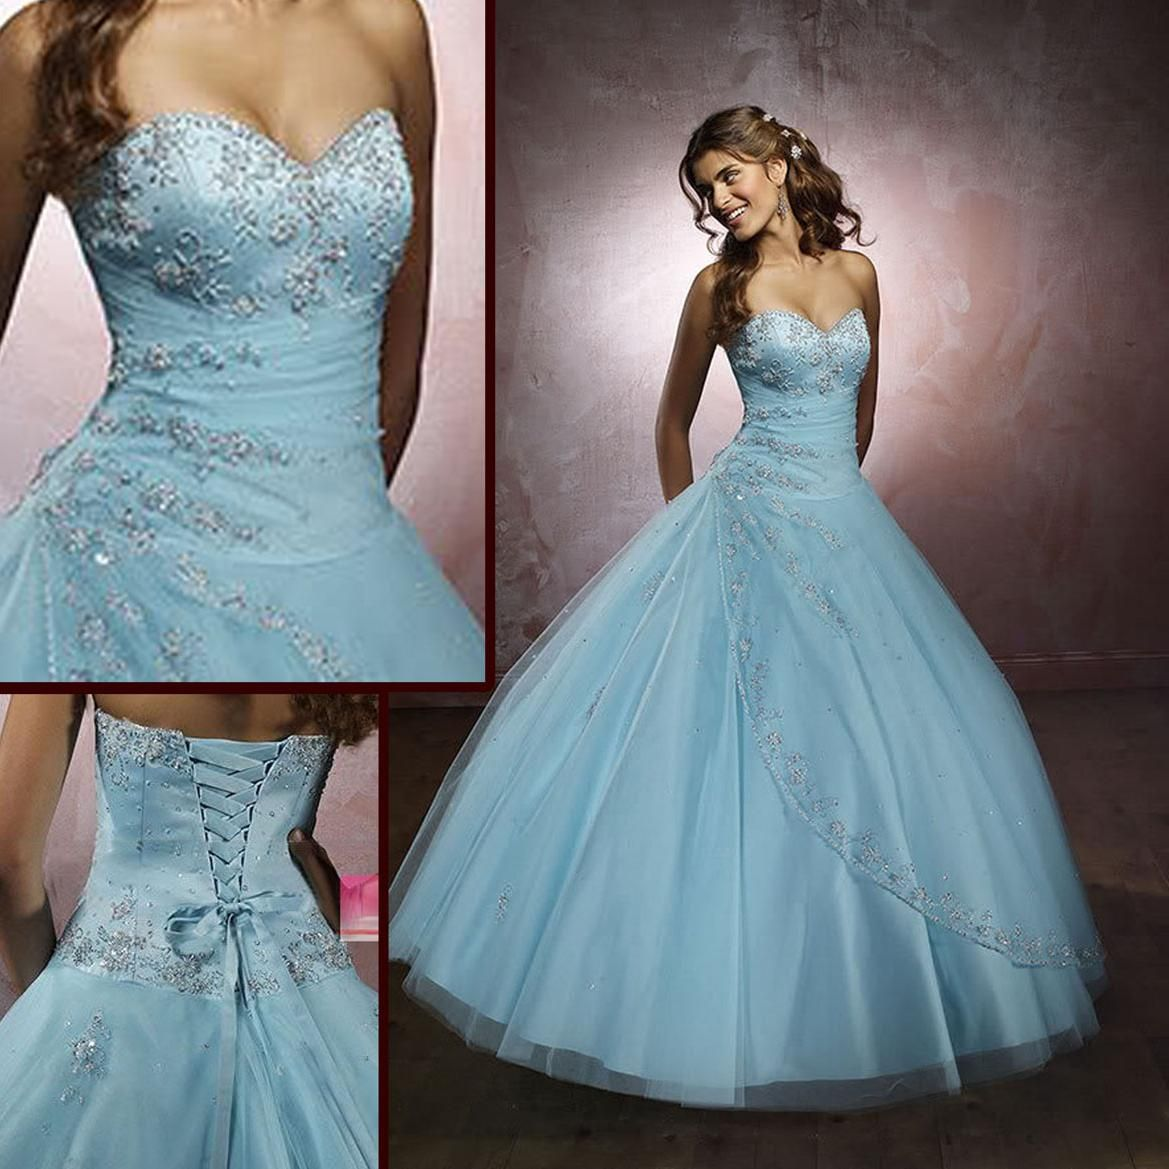 10  images about Perfect dresses on Pinterest  Teal wedding ...